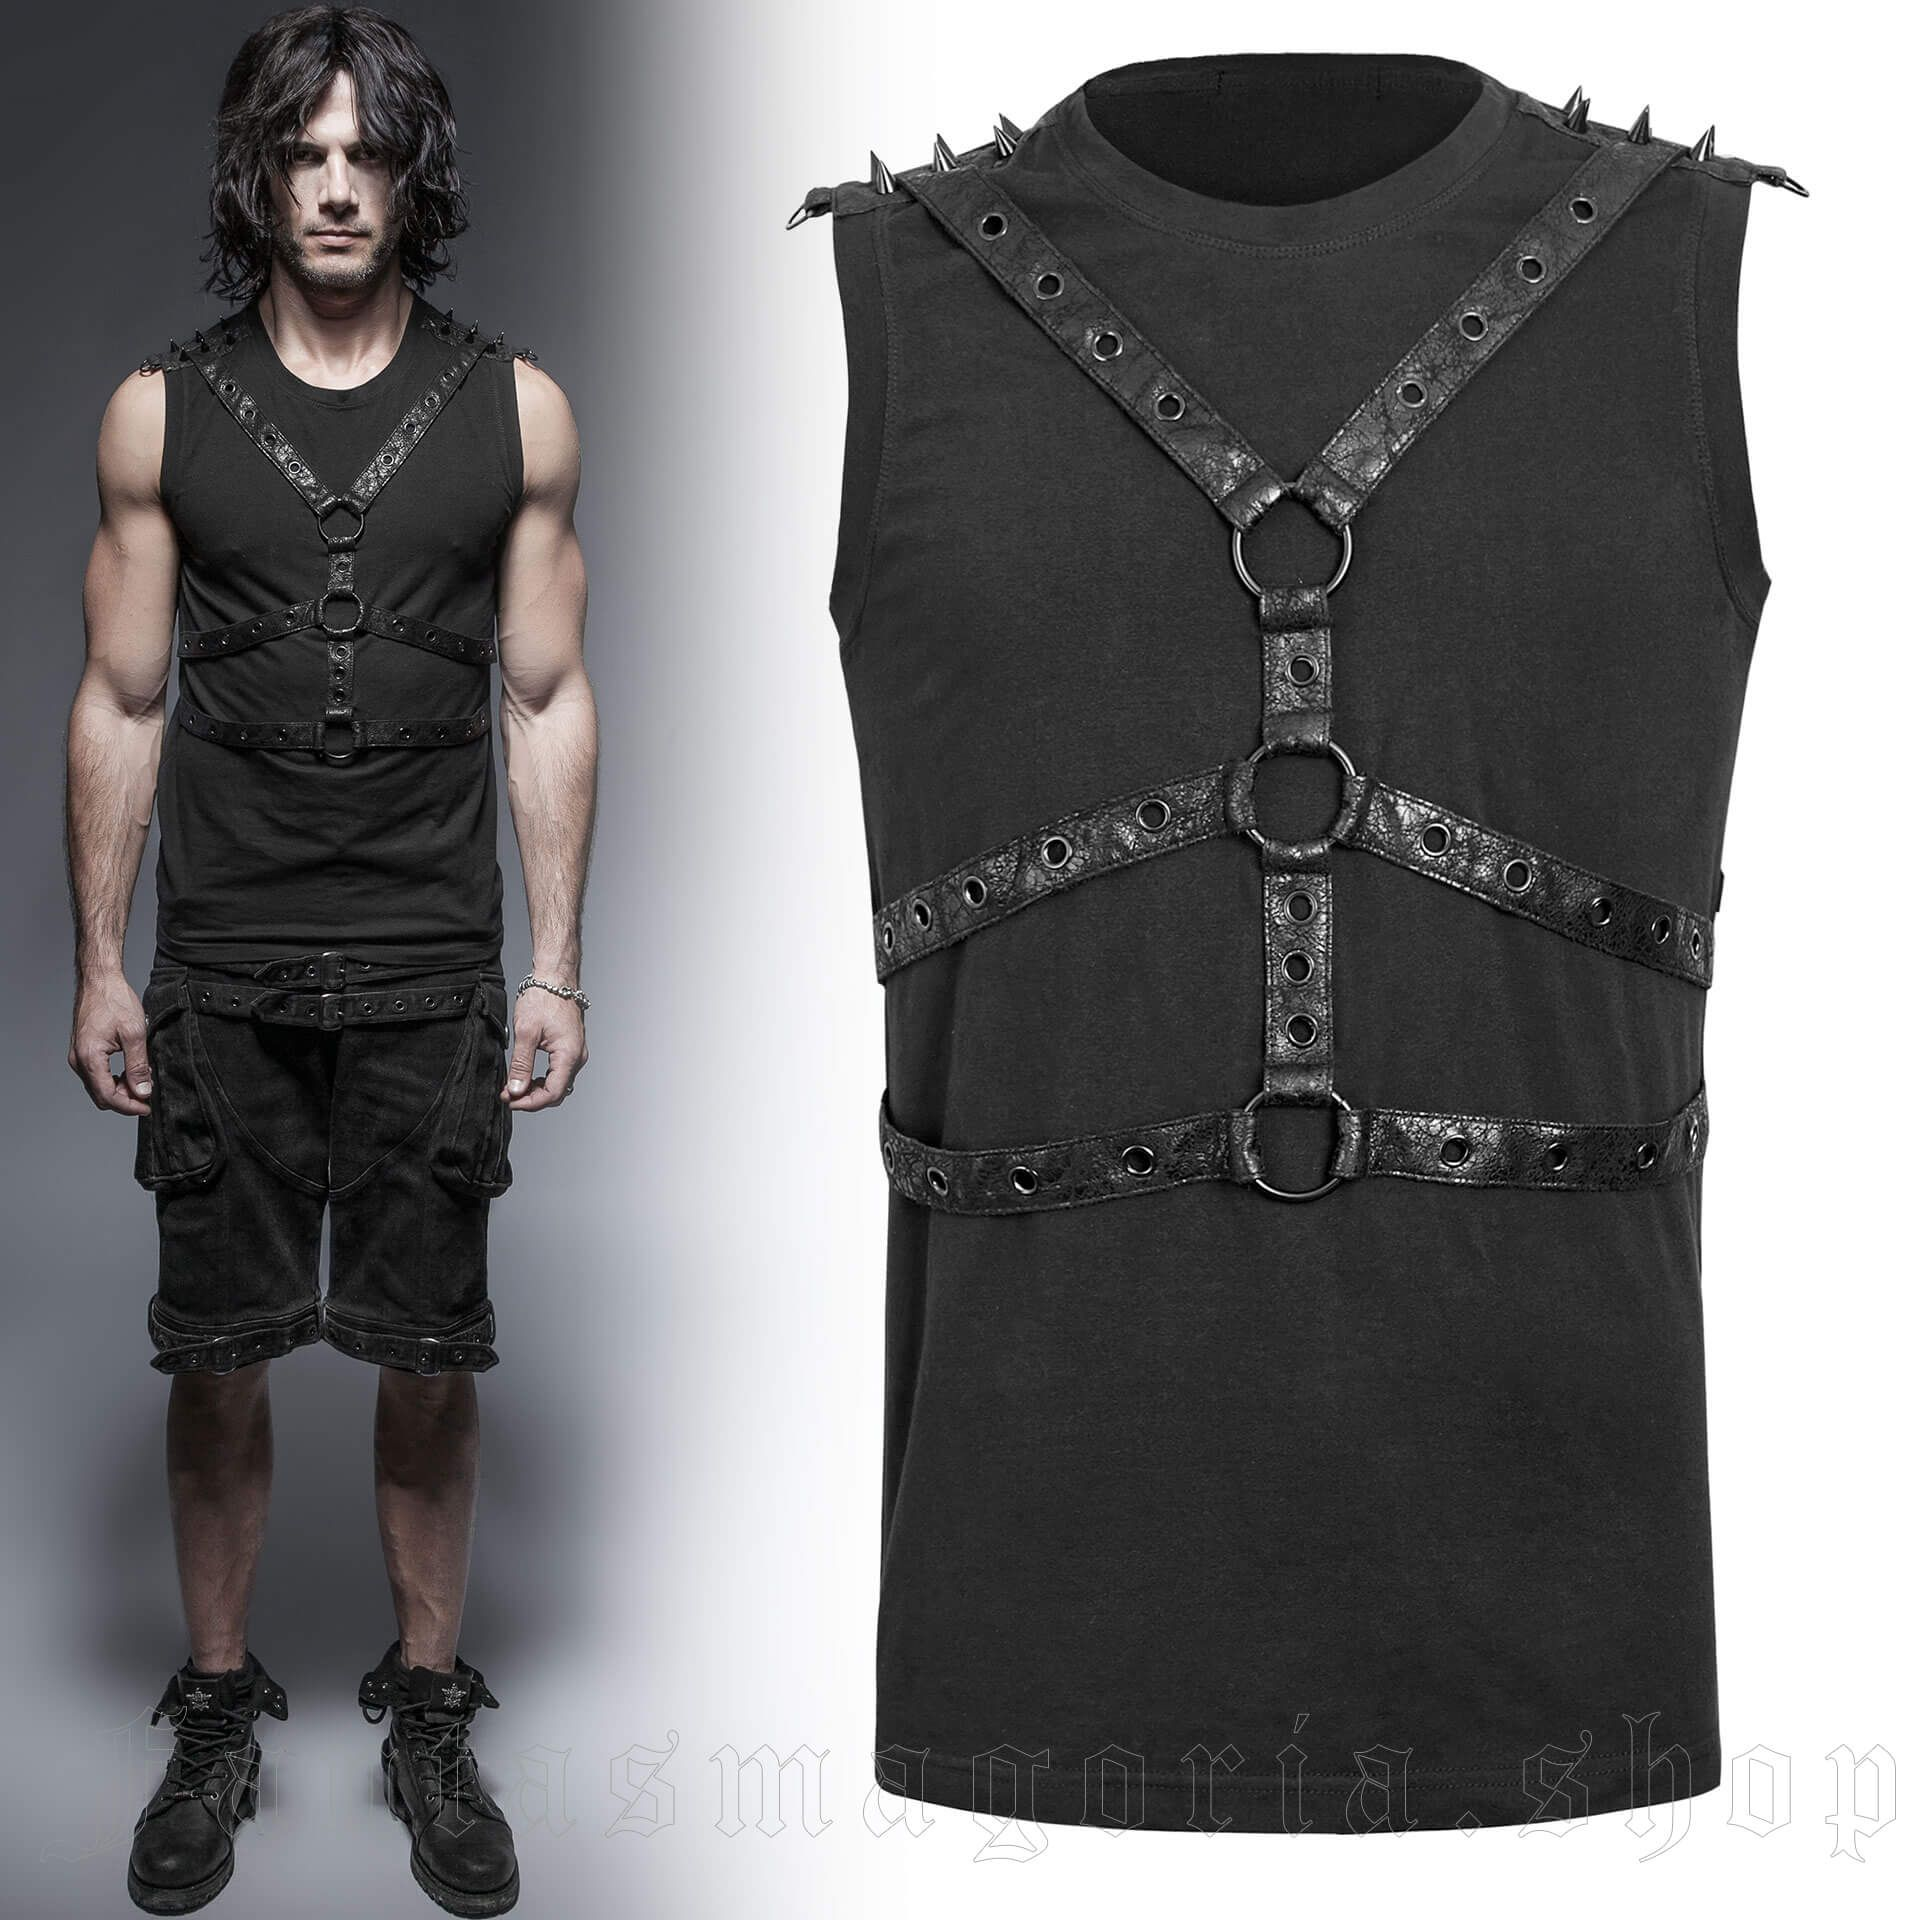 men's The Smog Top by PUNK RAVE brand, code: T-422